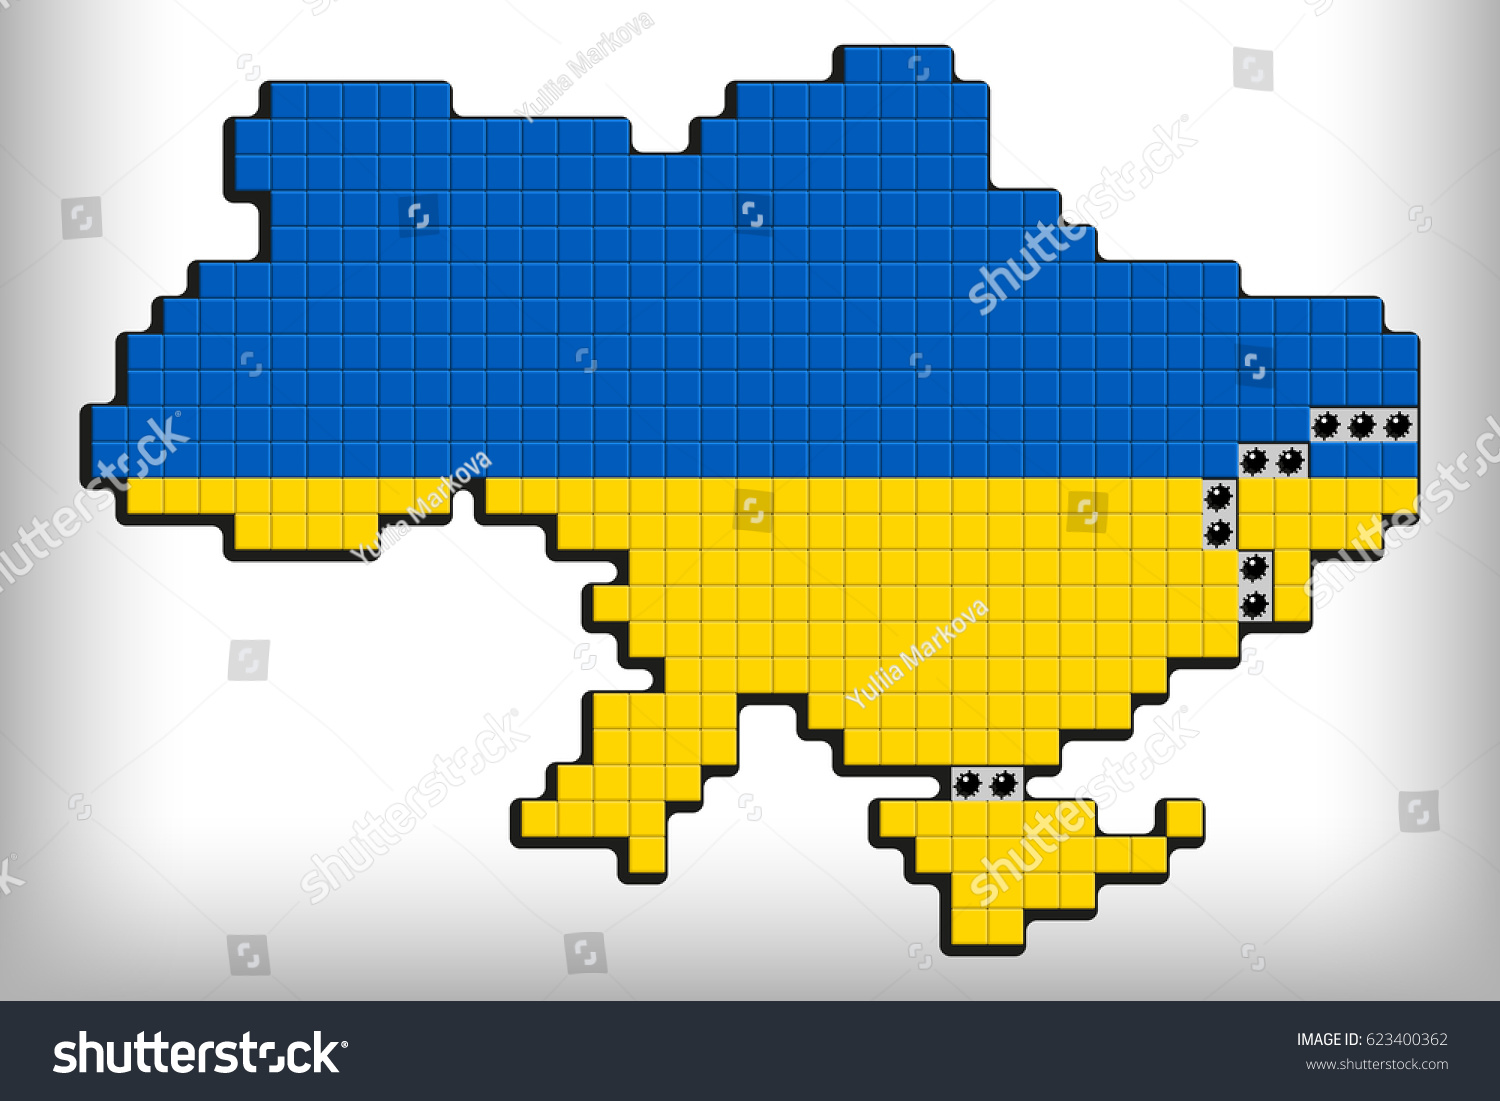 The National Map Of Ukraine With Line Demarcation In ATO Zone And Crimea